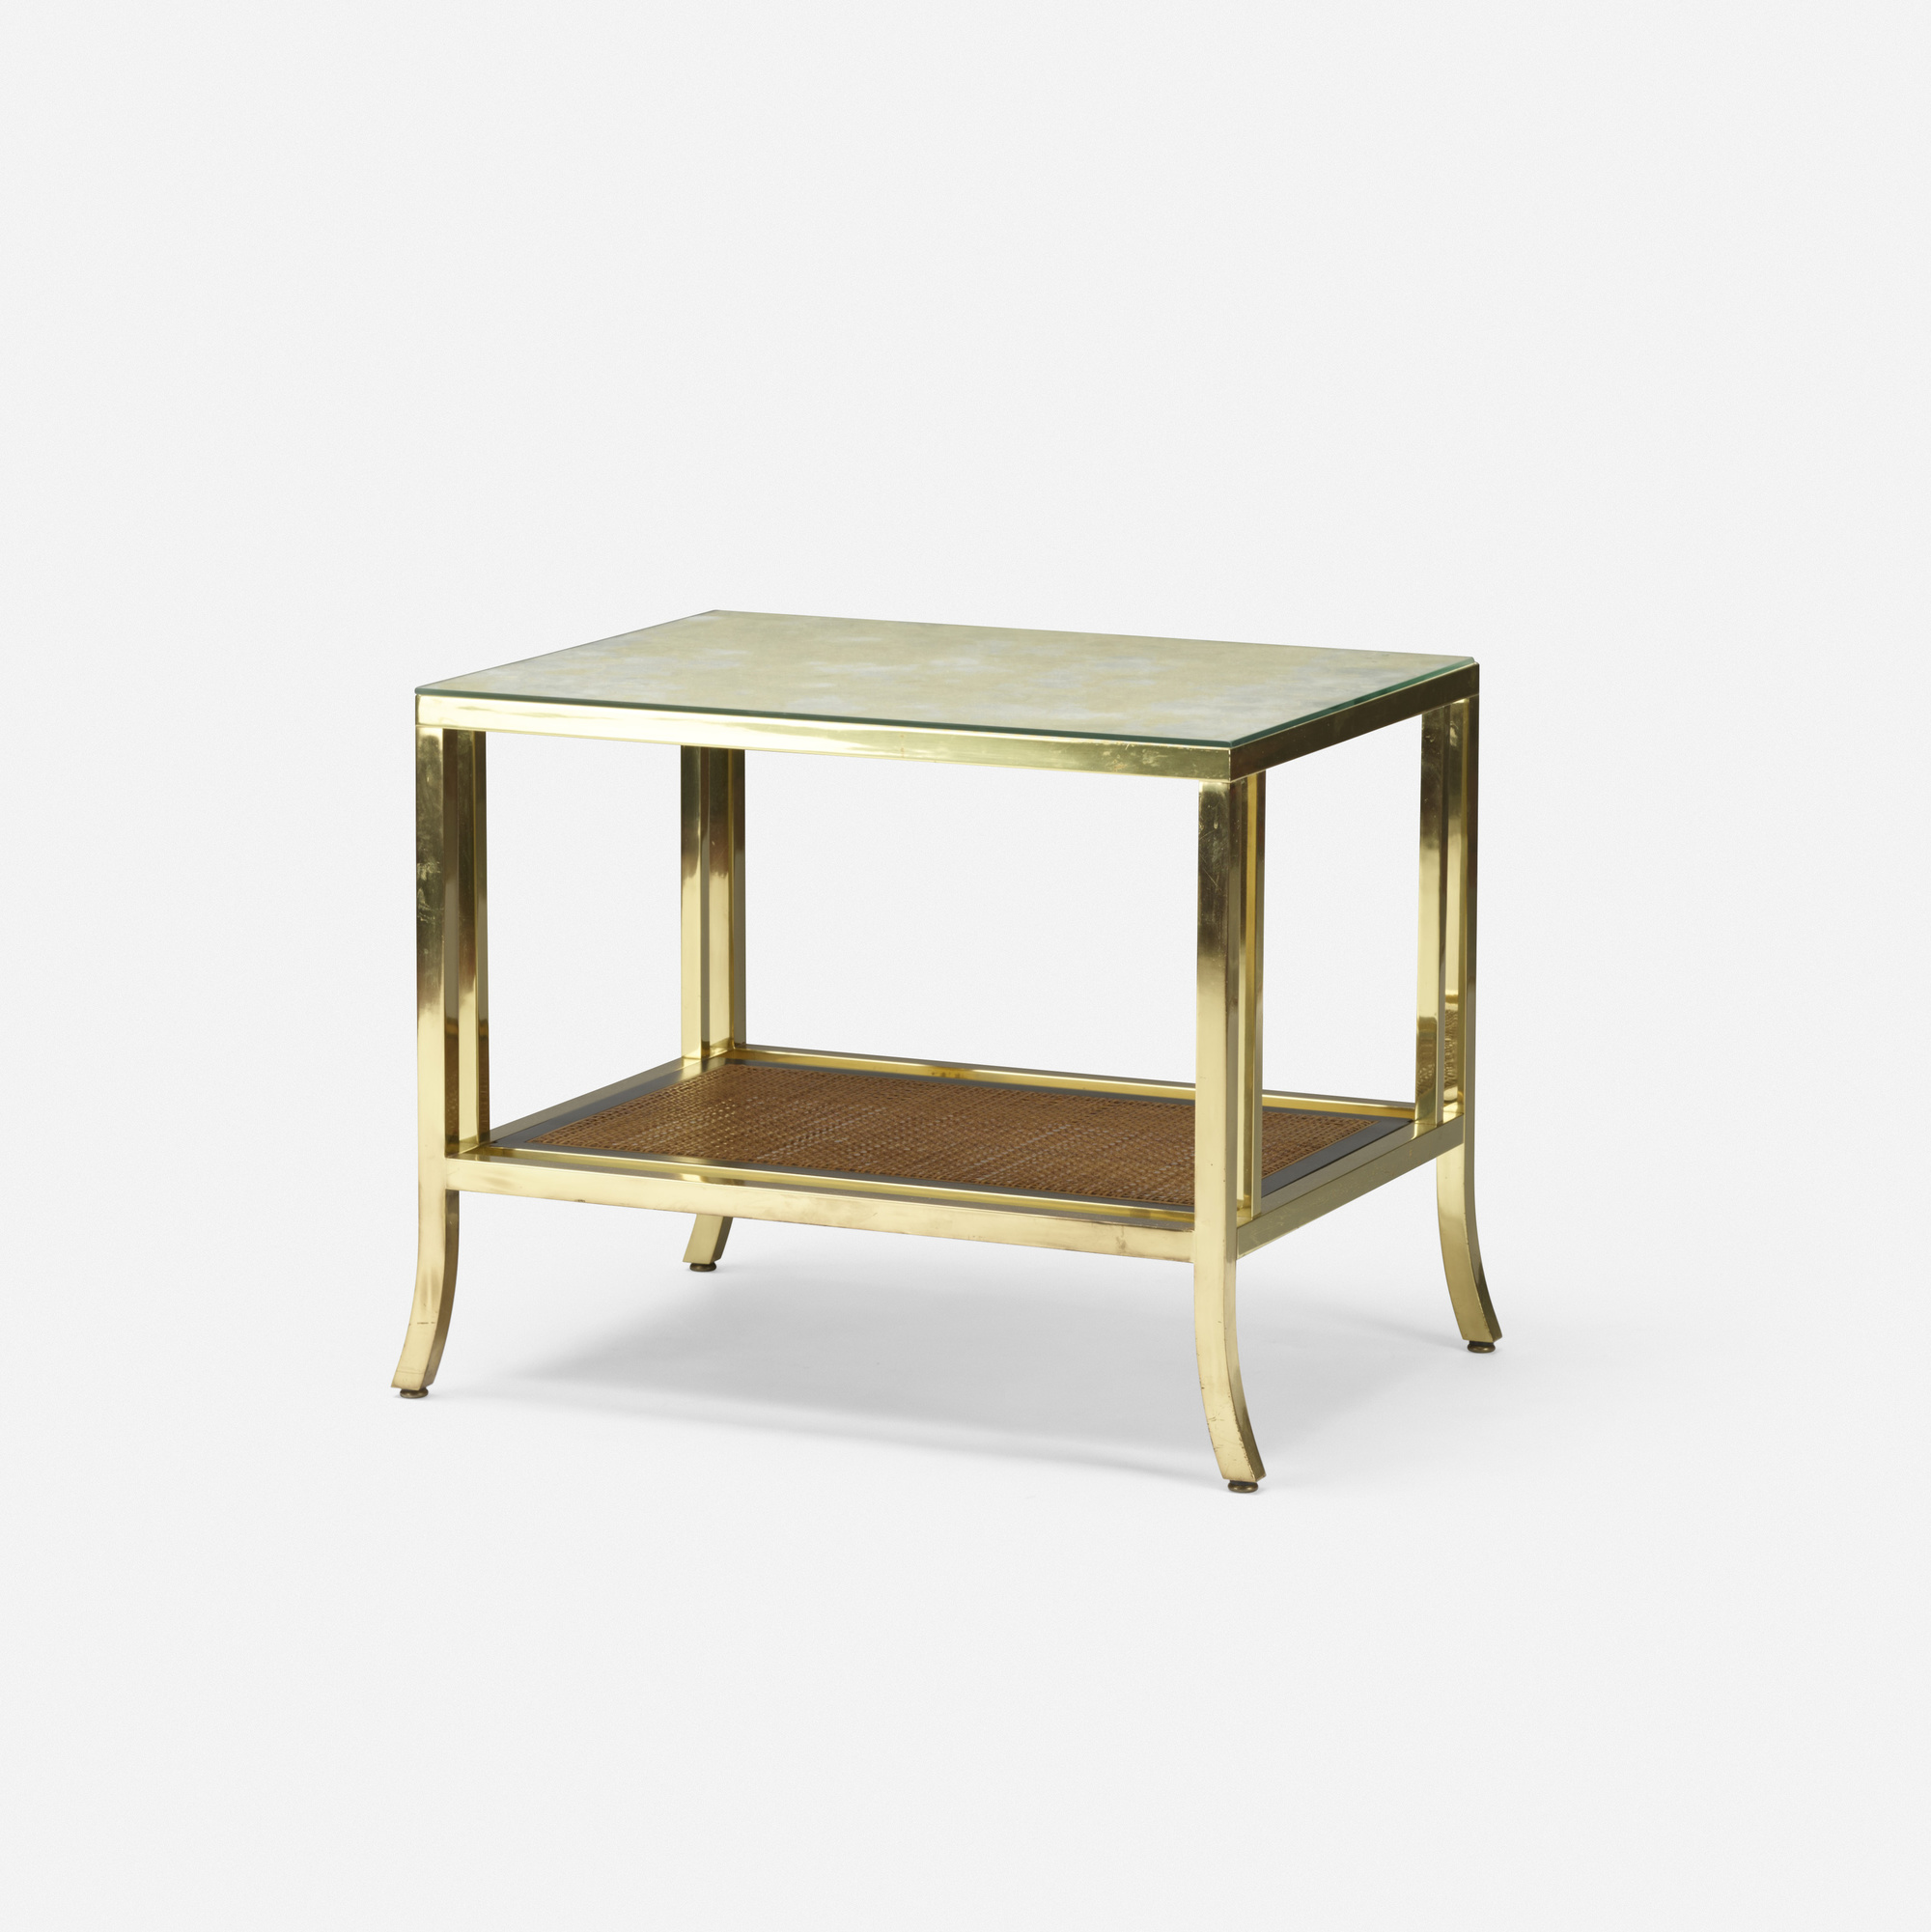 671: In the manner of Harvey Probber / occasional table (1 of 1)